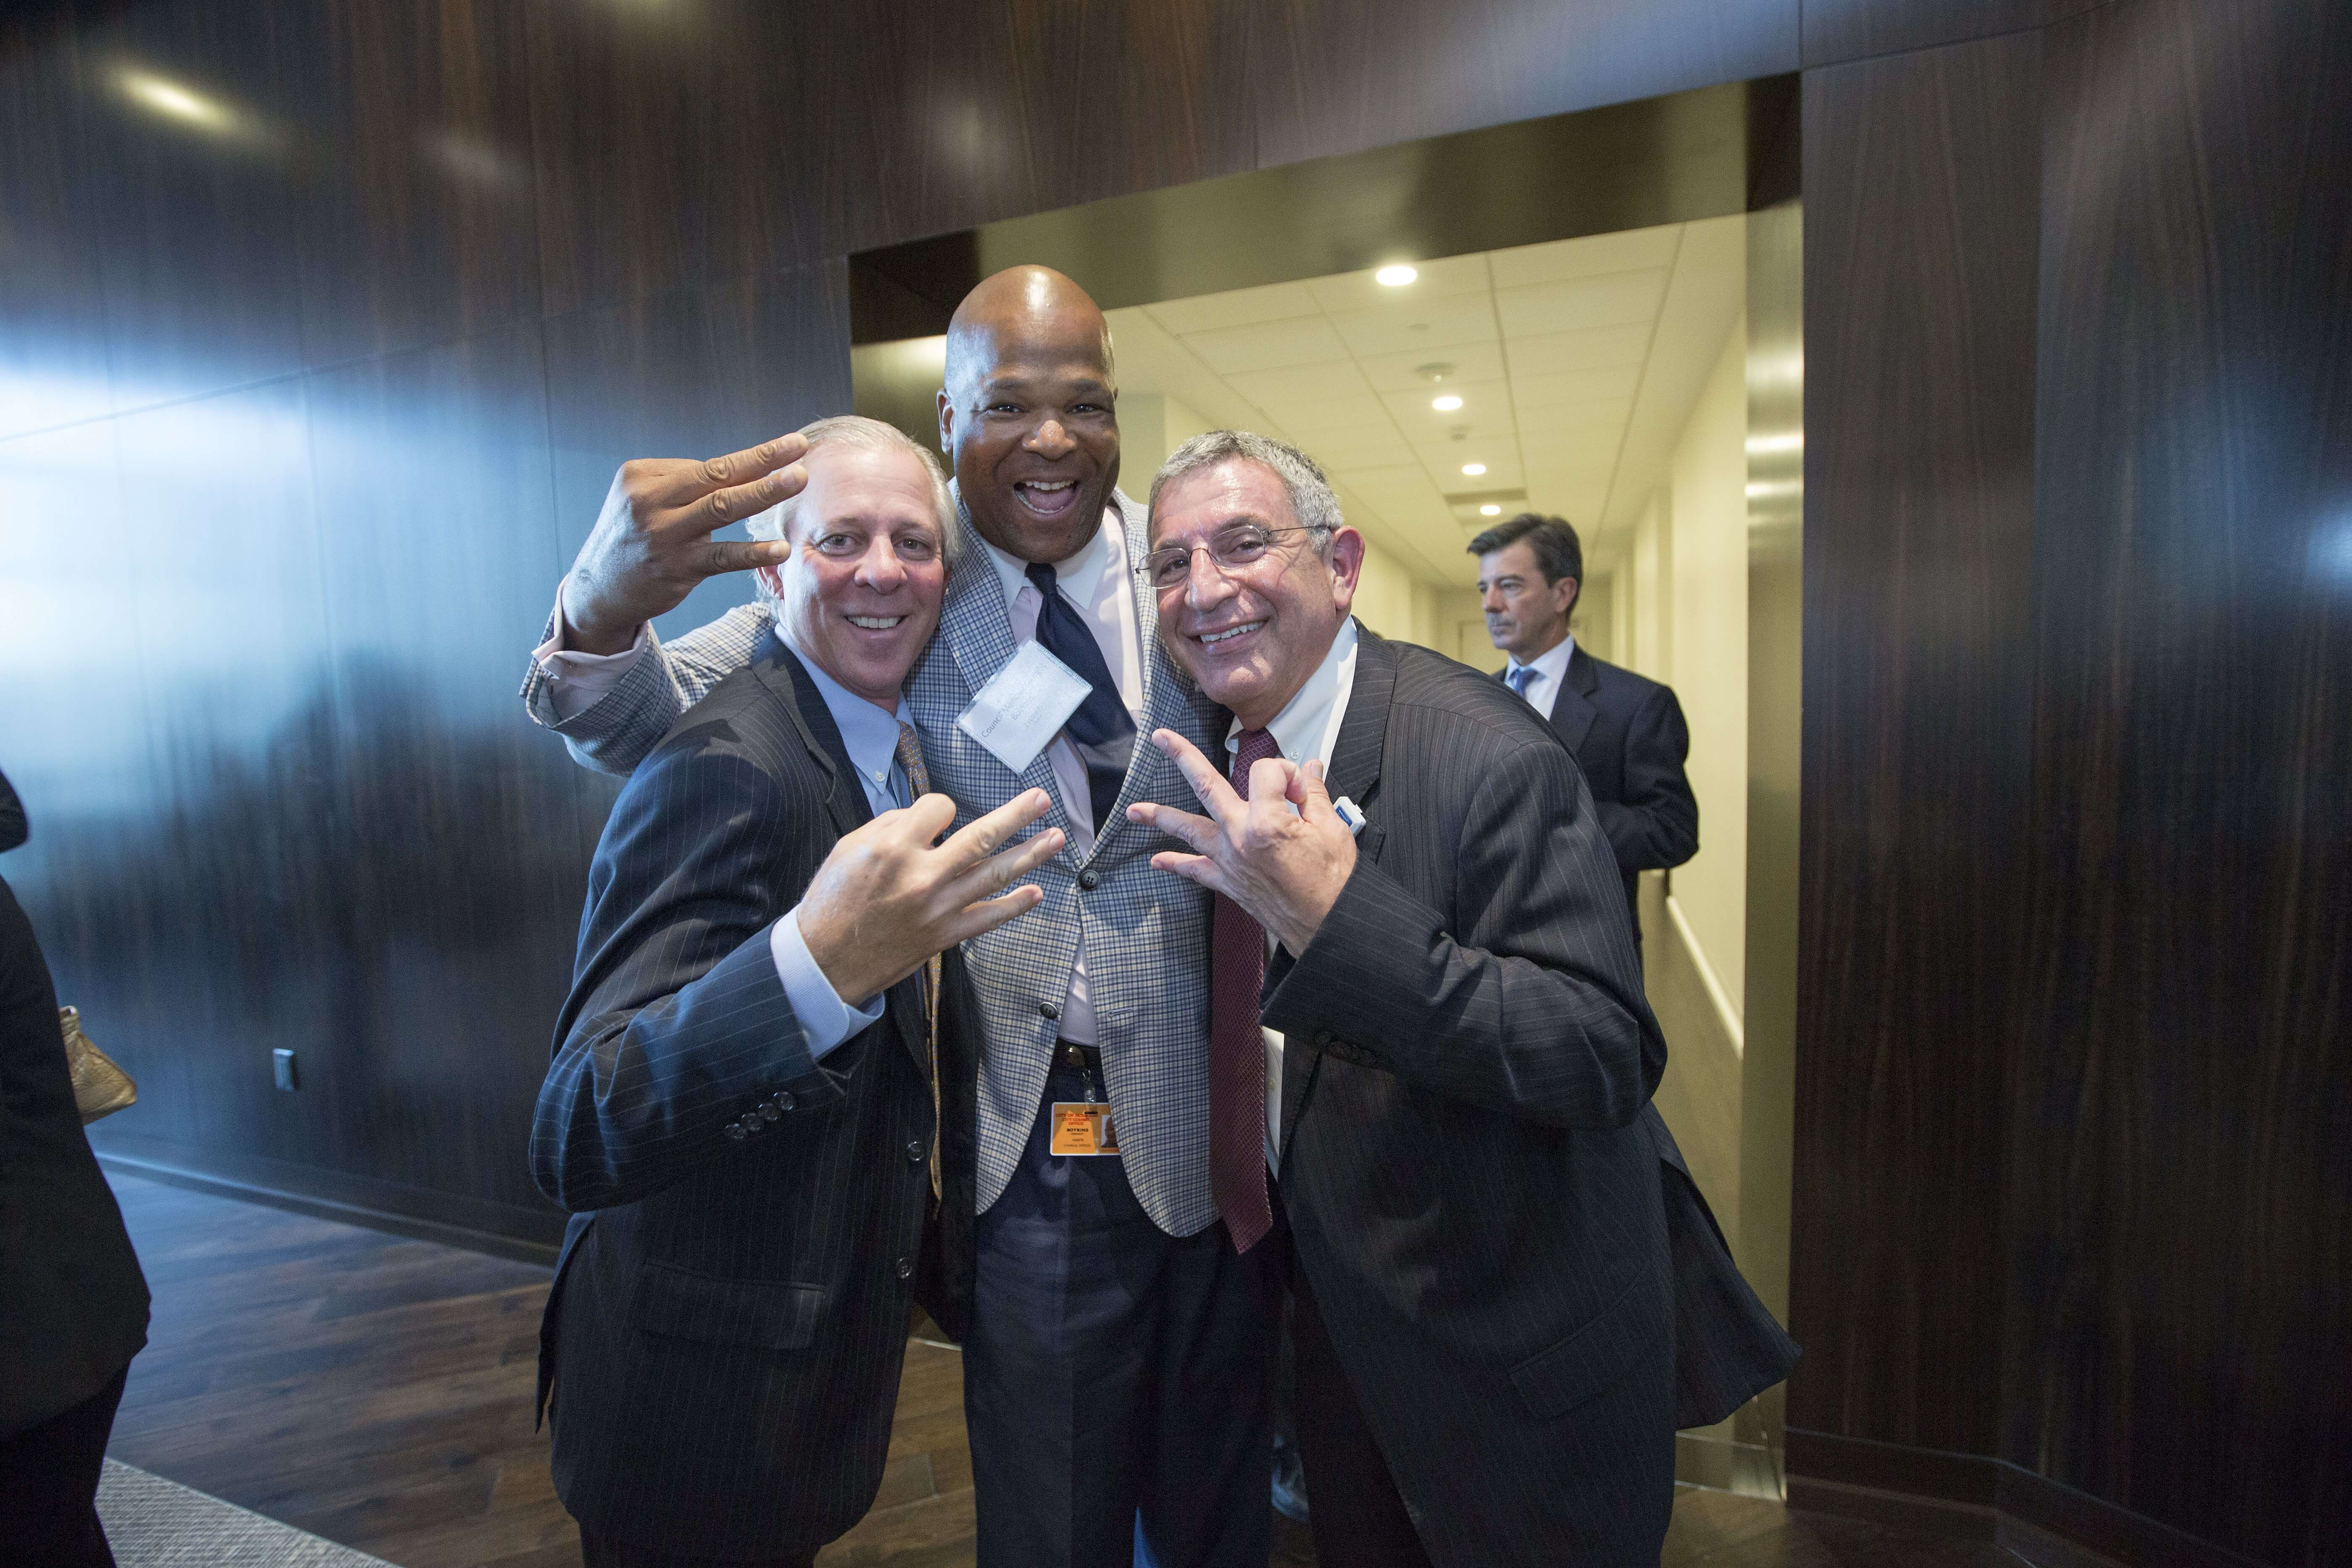 Robbert C. Robbins, M.D., Texas Medical Center CEO and president, Dwight Boykins, Council Member and Paul Klotman, M.D., president, CEO and executive dean of Baylor College of Medicine, throw up a three for the Third Coast.